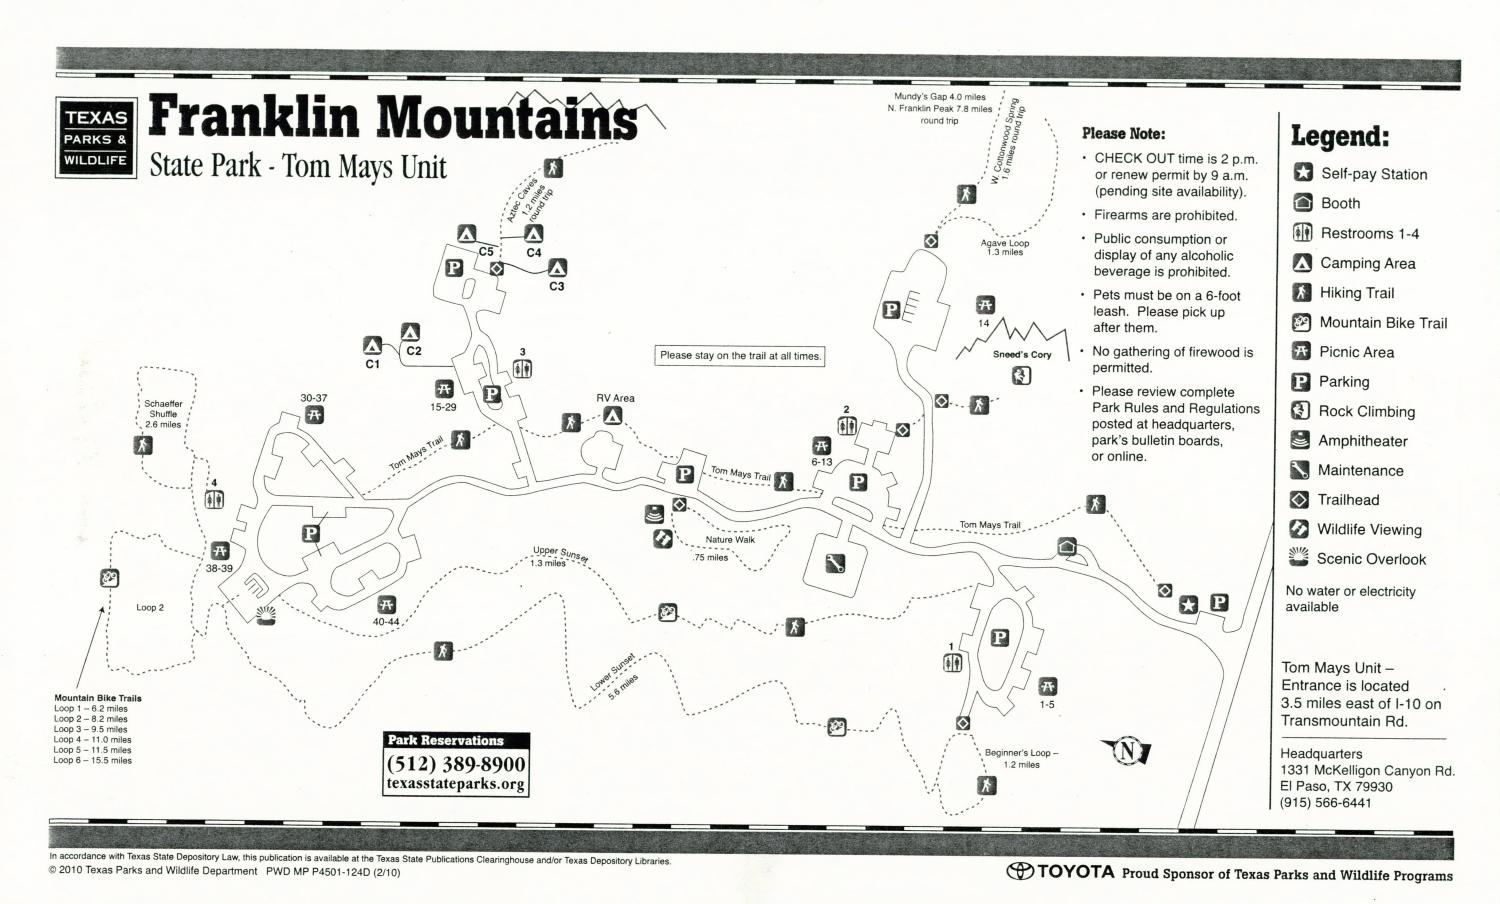 Franklin Mountains State Park - Tom Mays Unit, Map of the Franklin Mountains State Park outlining hiking trails and highlighting activities, facilities, and other features such as bathrooms, lodgings, water/electric, etc. It also contains general information for the park and for the Texas Parks and Wildlife Department.,